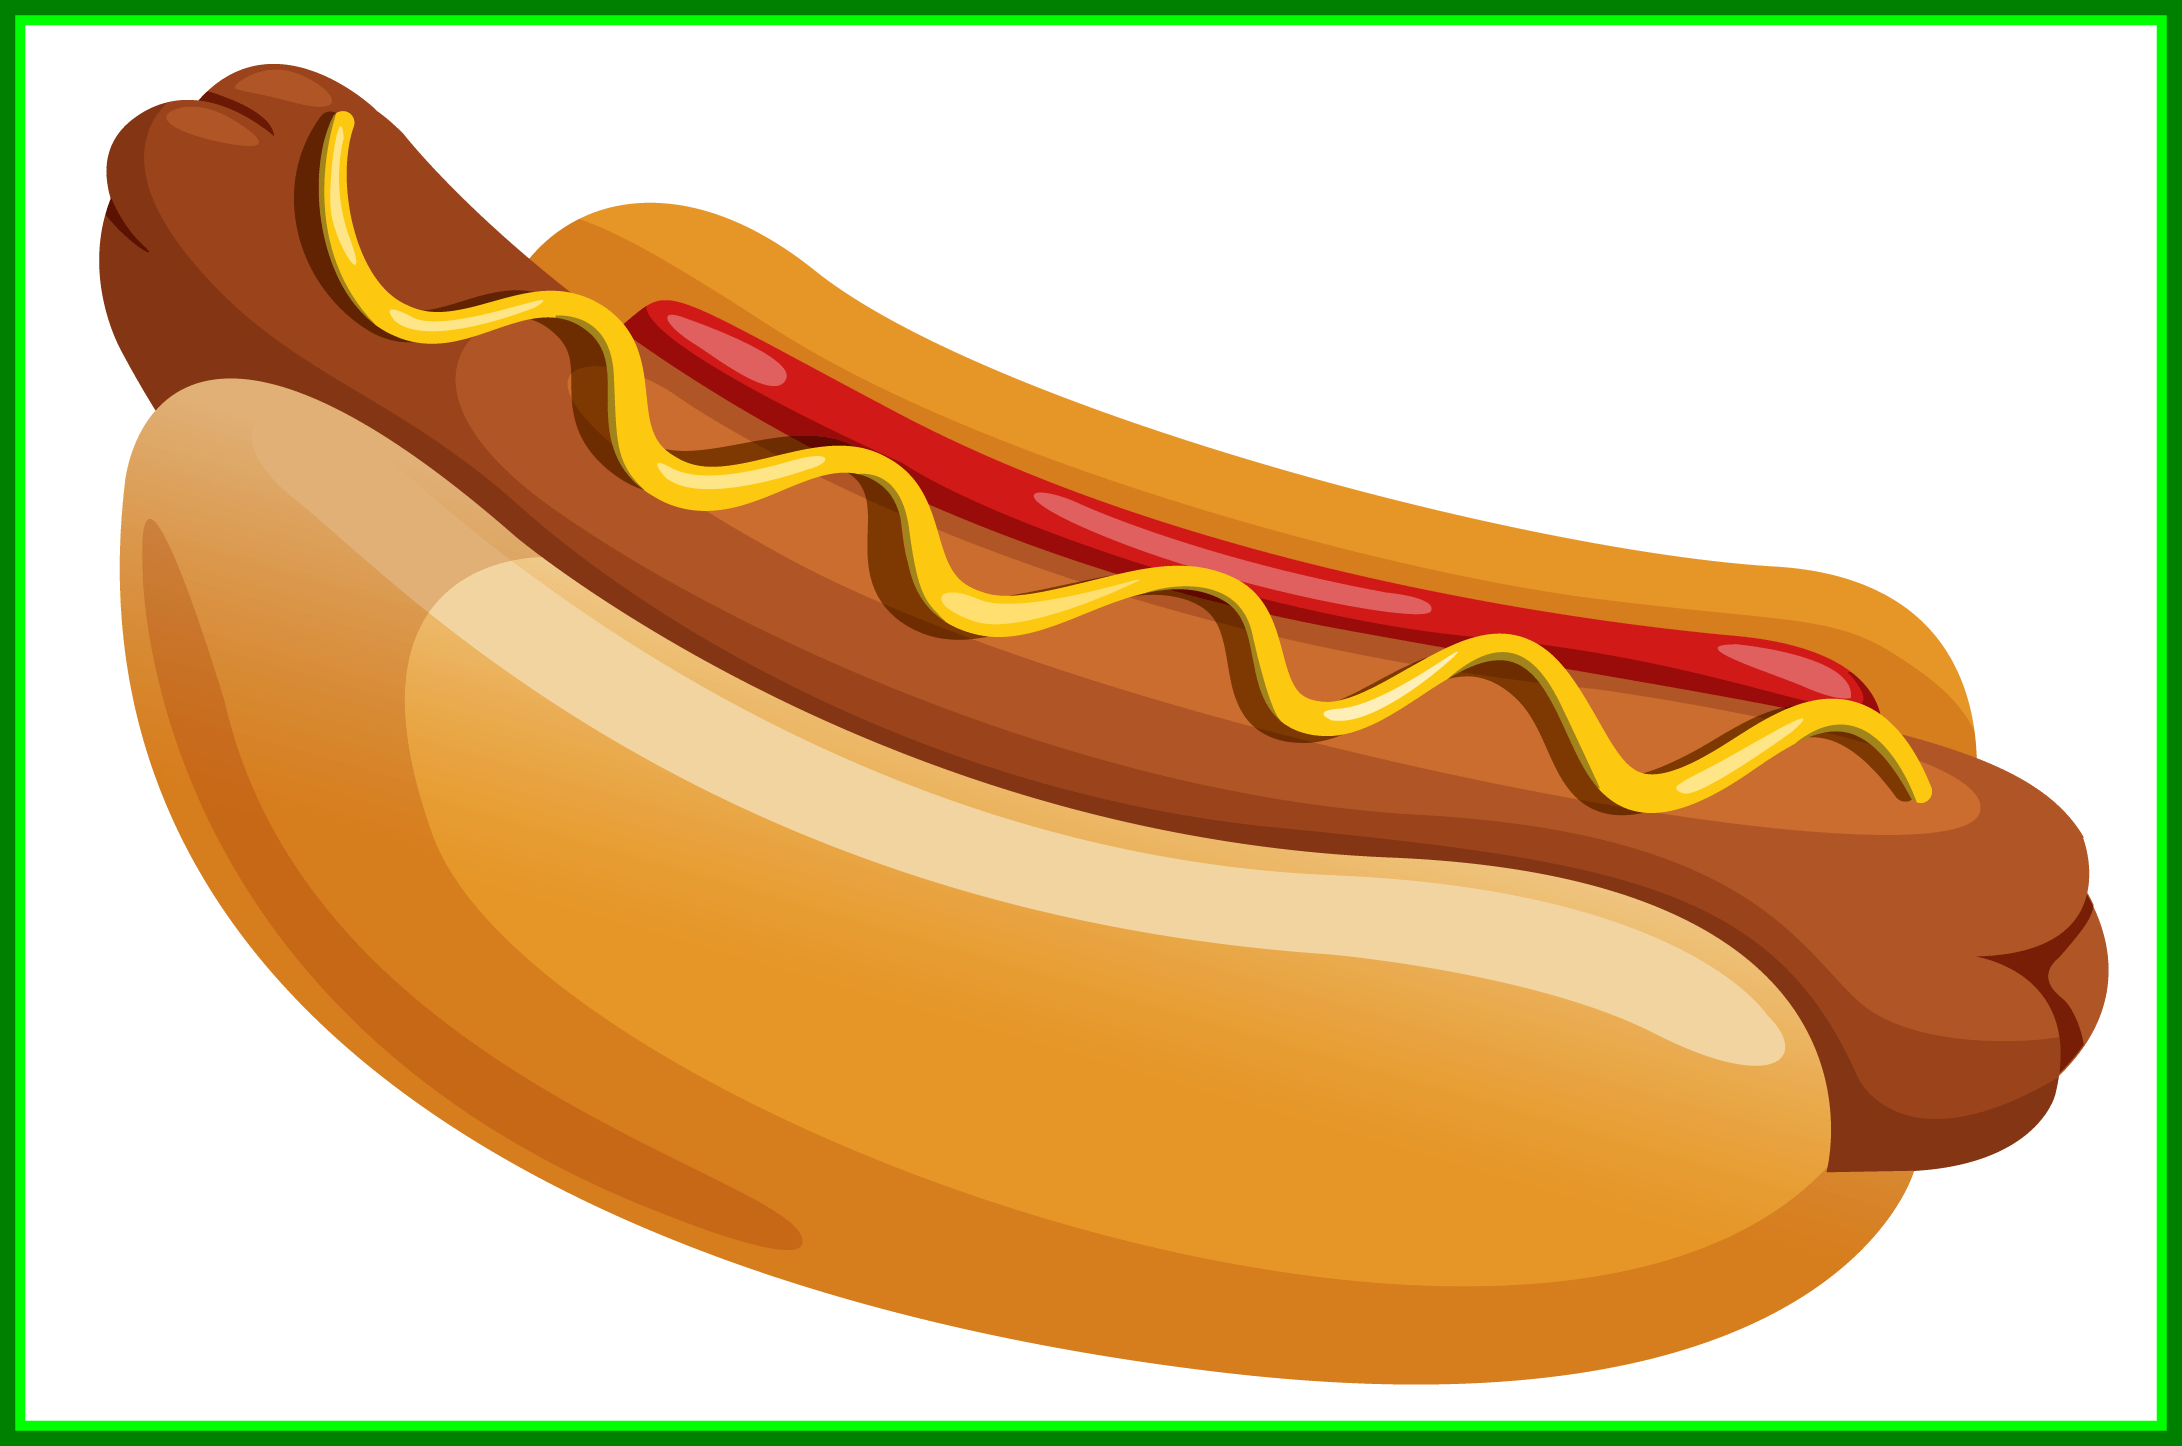 Hot dog in a bun line drawing clipart black and white download Hot Dog Drawing at PaintingValley.com | Explore collection ... black and white download